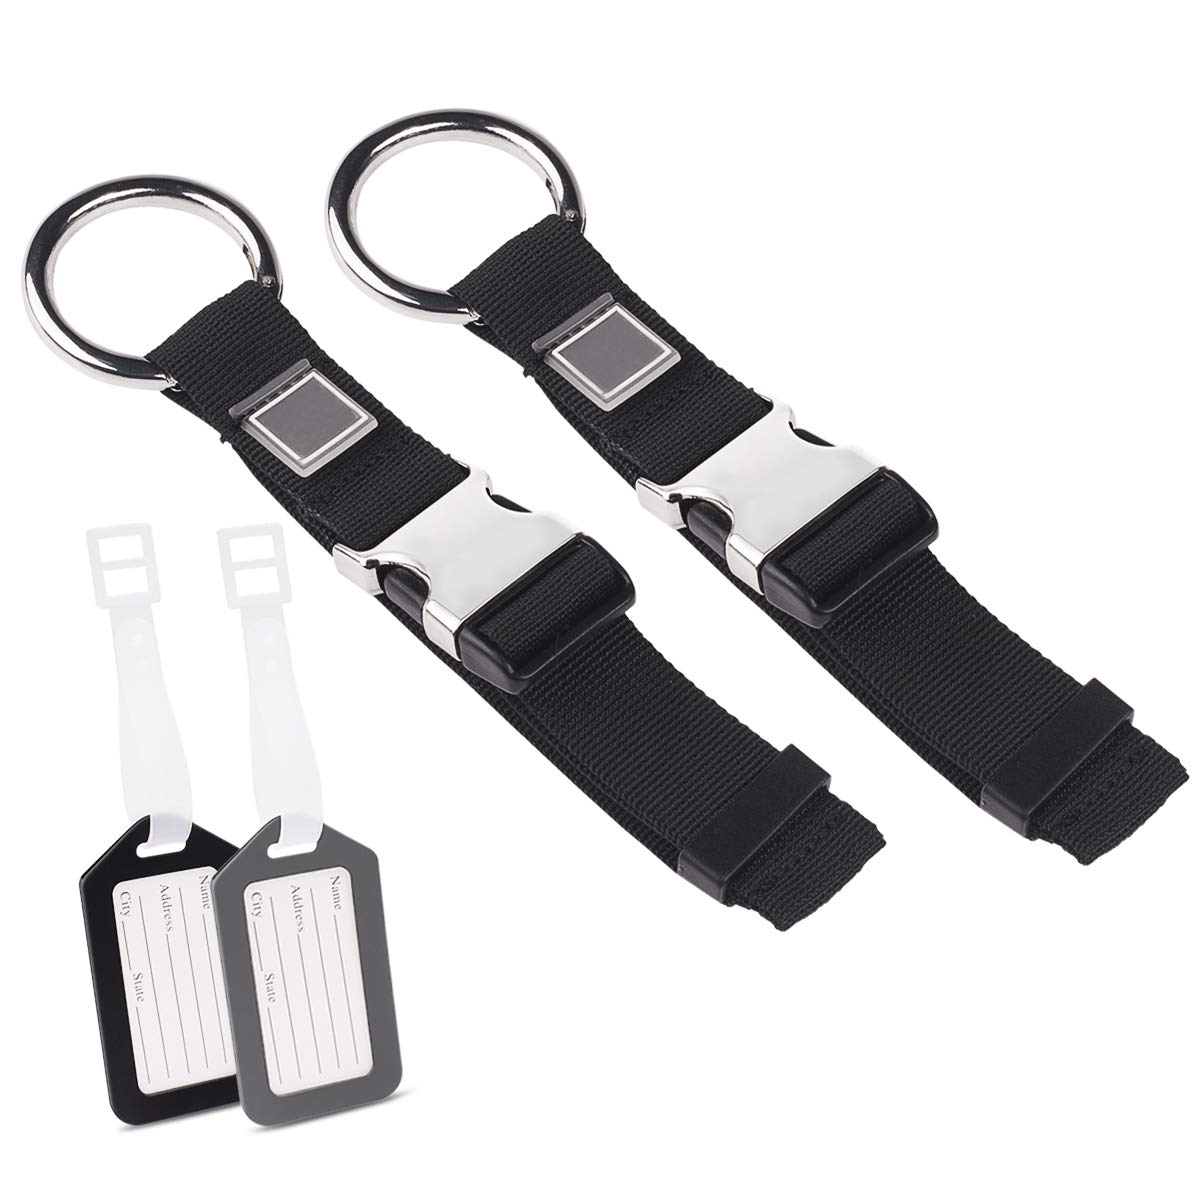 Add A Bag Luggage Straps Jacket Gripper, Yloves Baggage Suitcase Strap Belt with Luggage Tags Bag Labels Travel Accessories